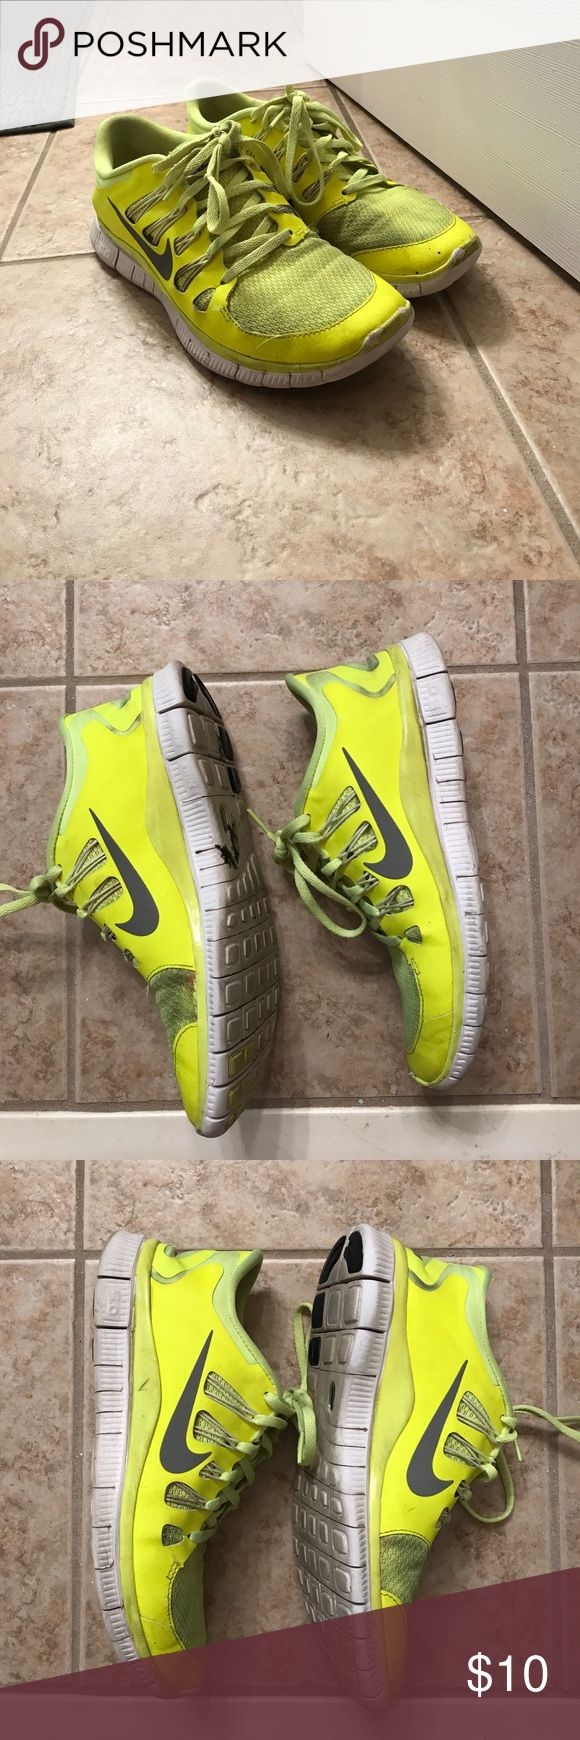 Neon yellow Nike Frees 8.5 Used Nike Frees in neon yellow. Used these as running shoes. See wear in photos Nike Shoes Sneakers